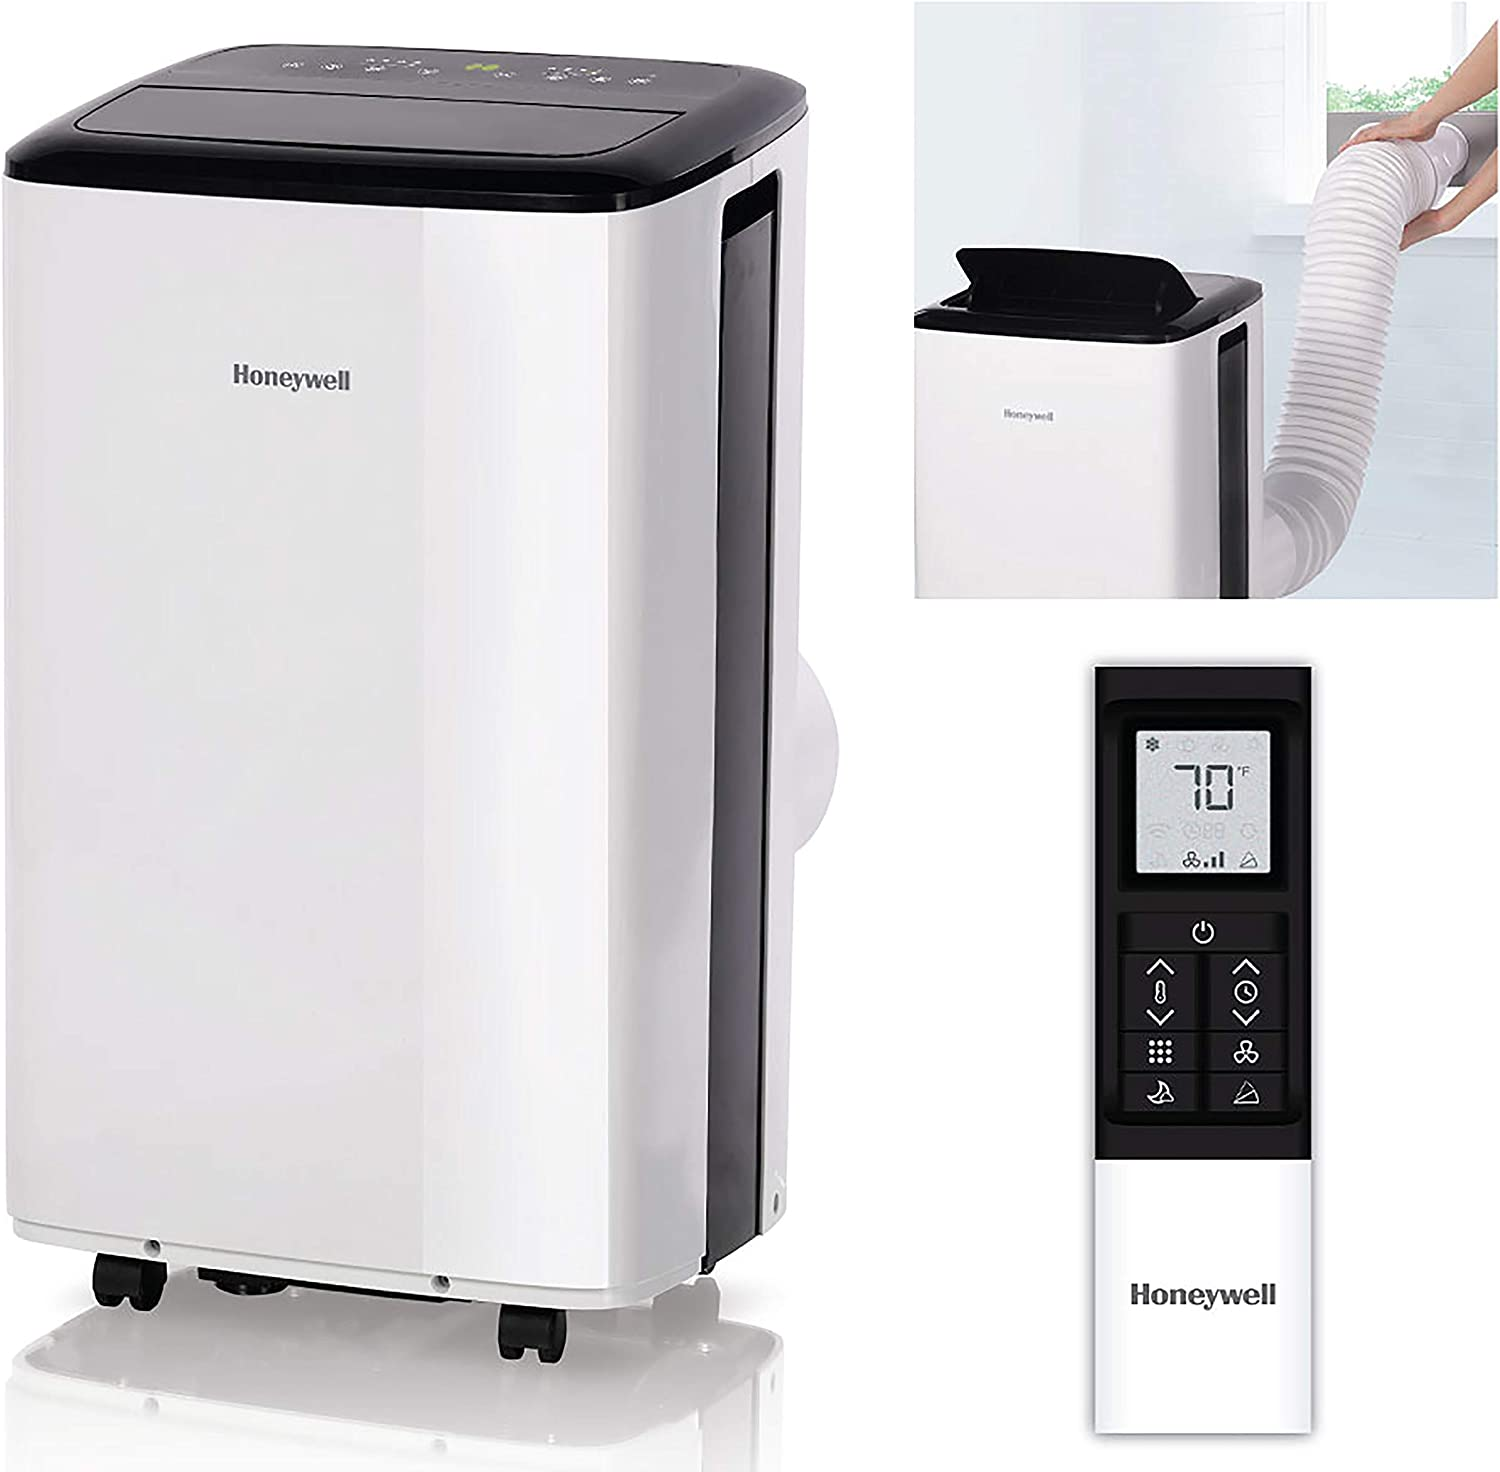 Honeywell Compact Portable Air Conditioner w/Dehumidifier & Fan Cools Rooms Up to 350 Sq.Ft. w/Drain Pan & Insulation Tape, White